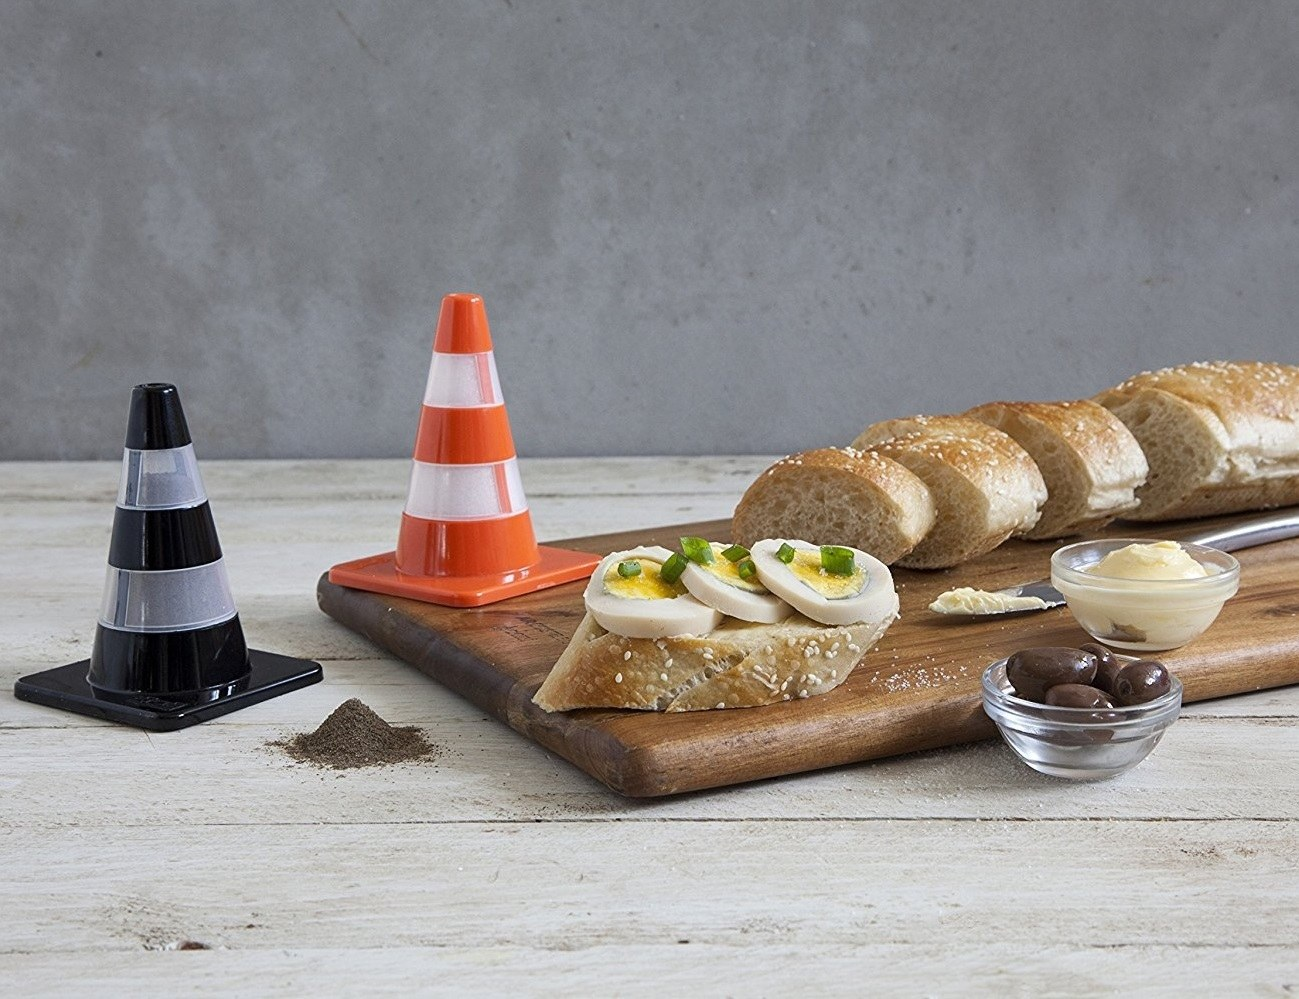 Salt & Pepper Cones – In Classic Cone Shape